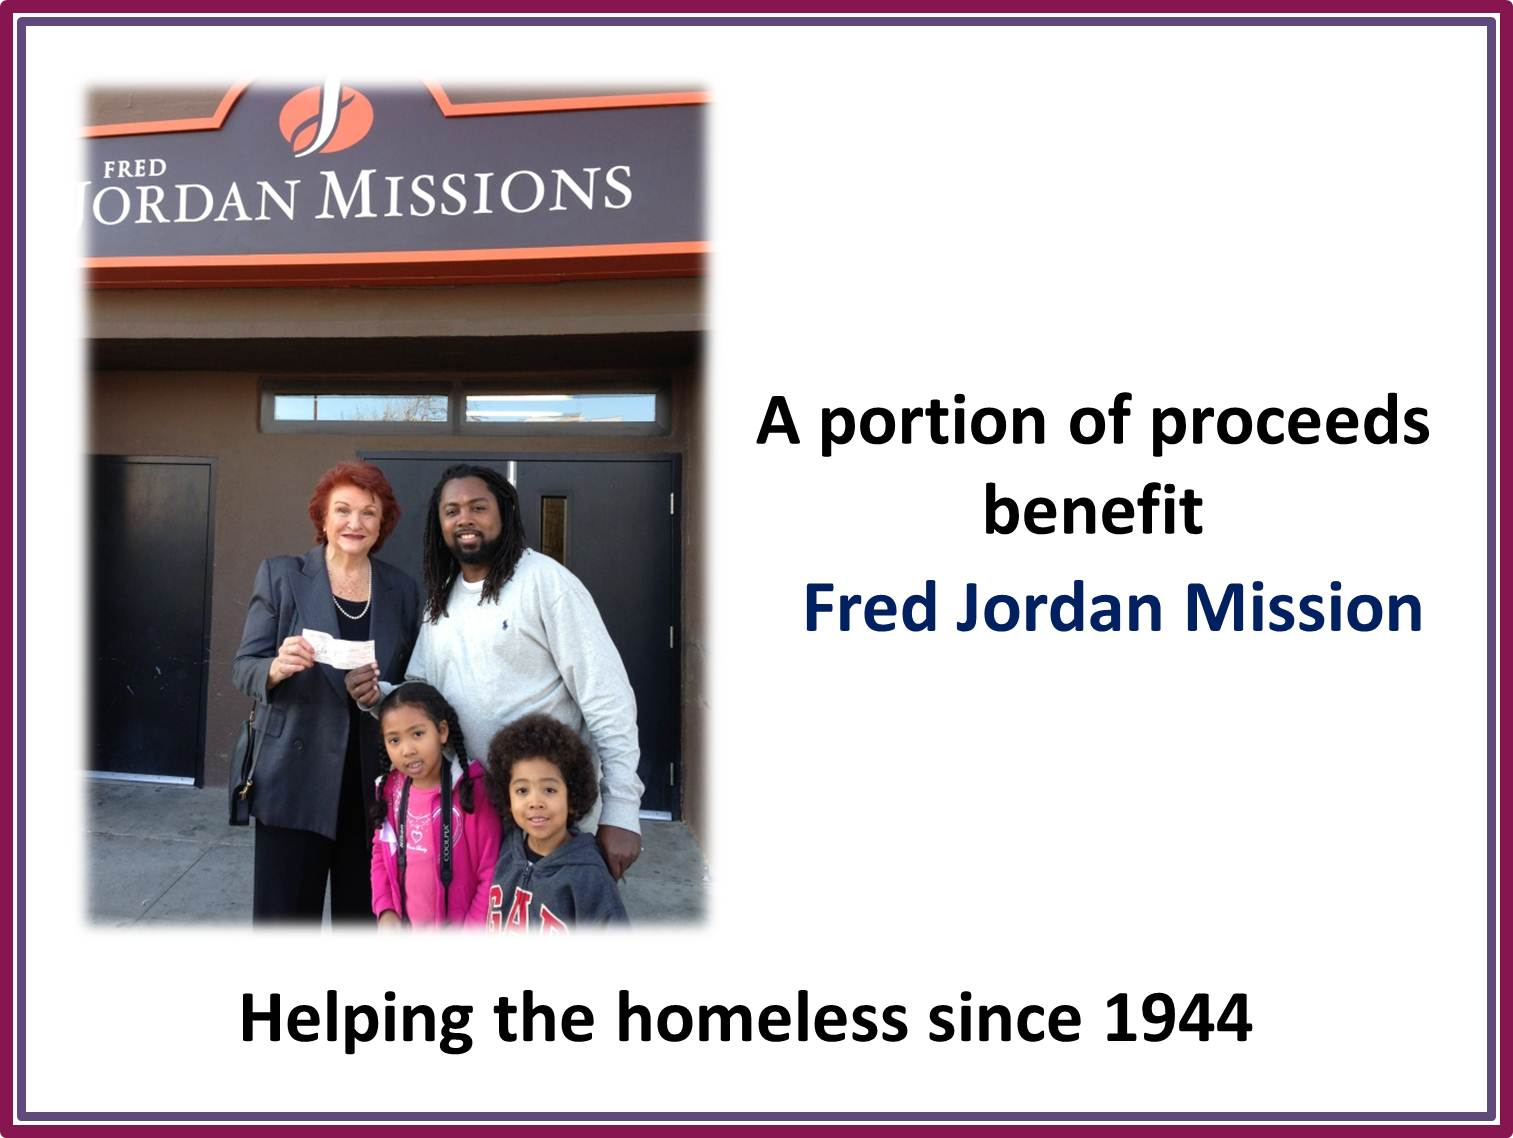 Deon Edwards, publisher of TWICEDOT is seen delivering a donation check to Ms Williw Jordan, Co-Founder of Fred Jordan Missions. The check was from a Los Angeles business owner.